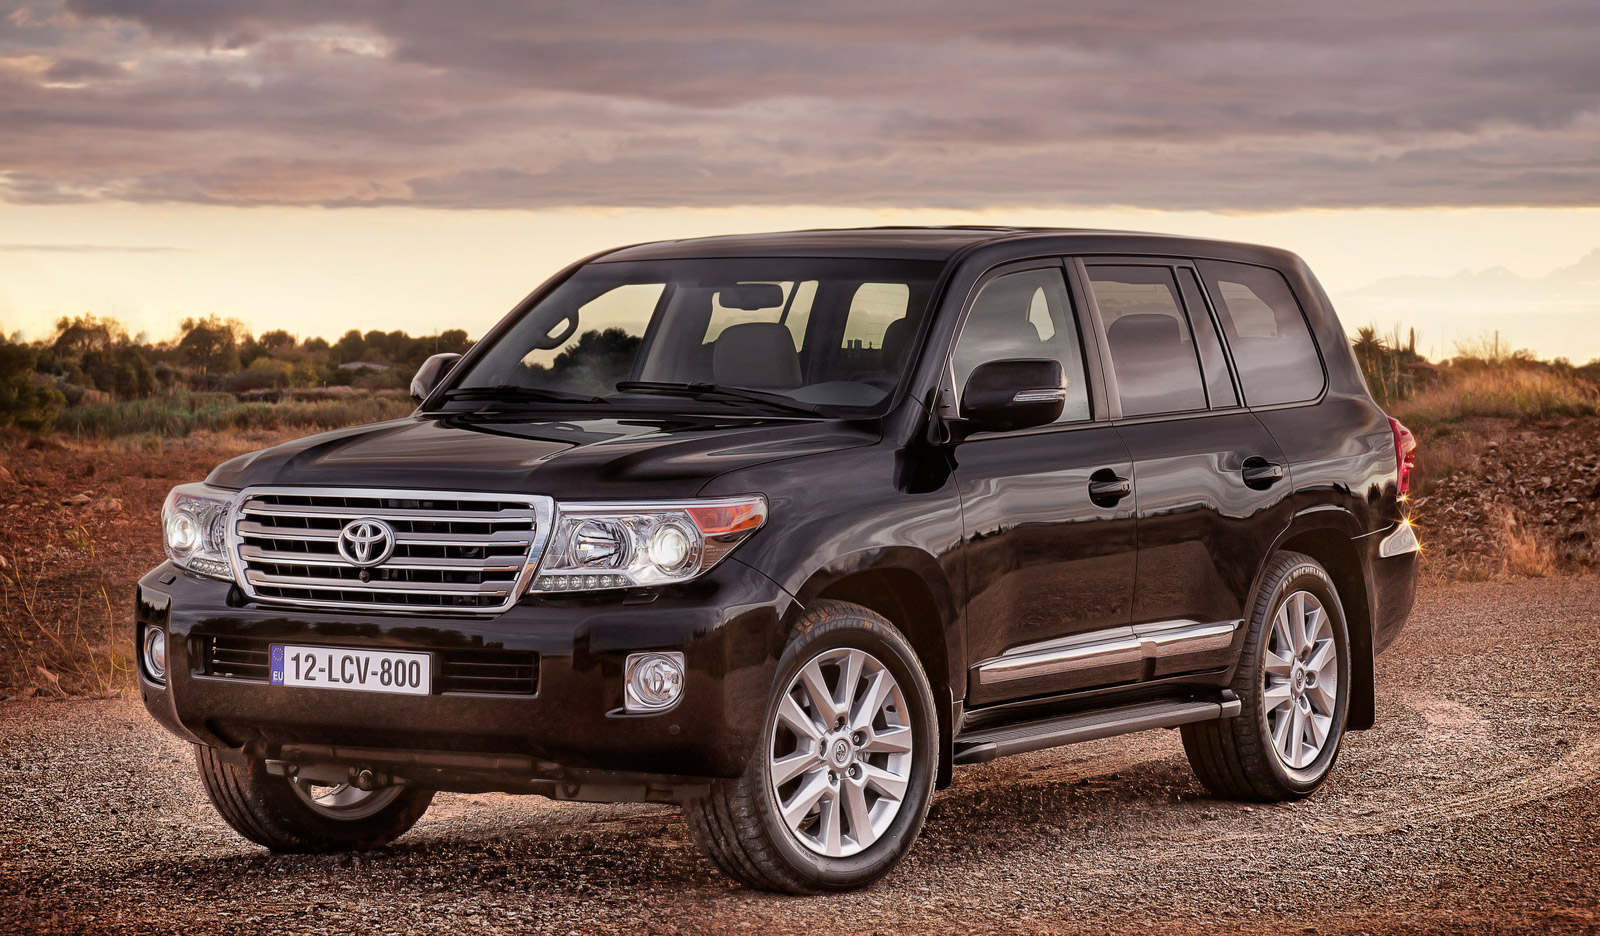 2013 Toyota Land Cruiser Review Ratings Specs Prices